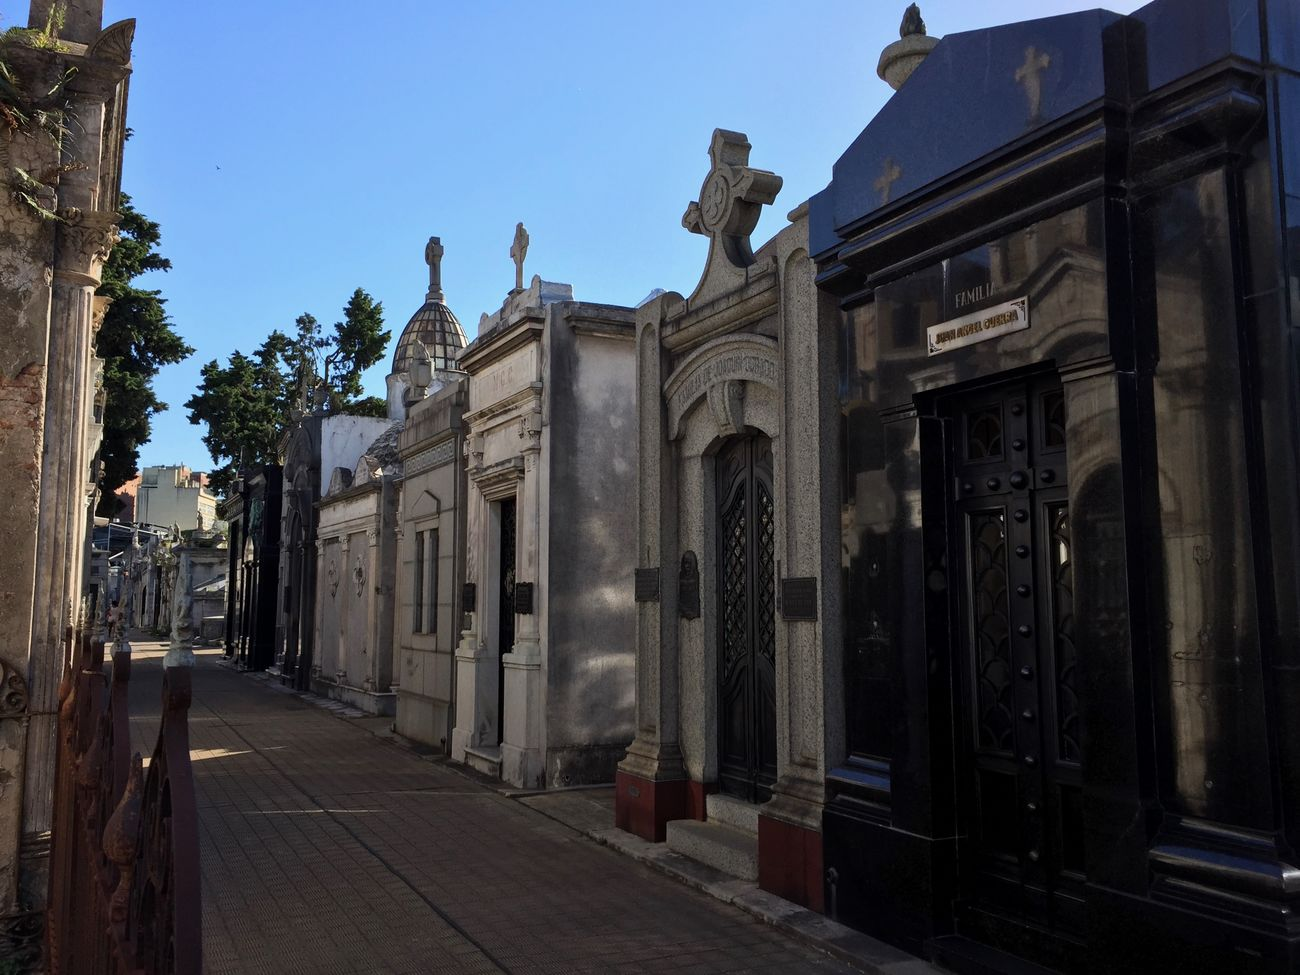 Recoleta Cemetery in Buenos Aires Argentina Architecture Argentina Buenos Aires Building Exterior Built Structure Cemetery City Clear Sky Day History Mausoleum No People Outdoors Recoleta Recoleta Cemetery Sculpture Sky Statue Neighborhood Map